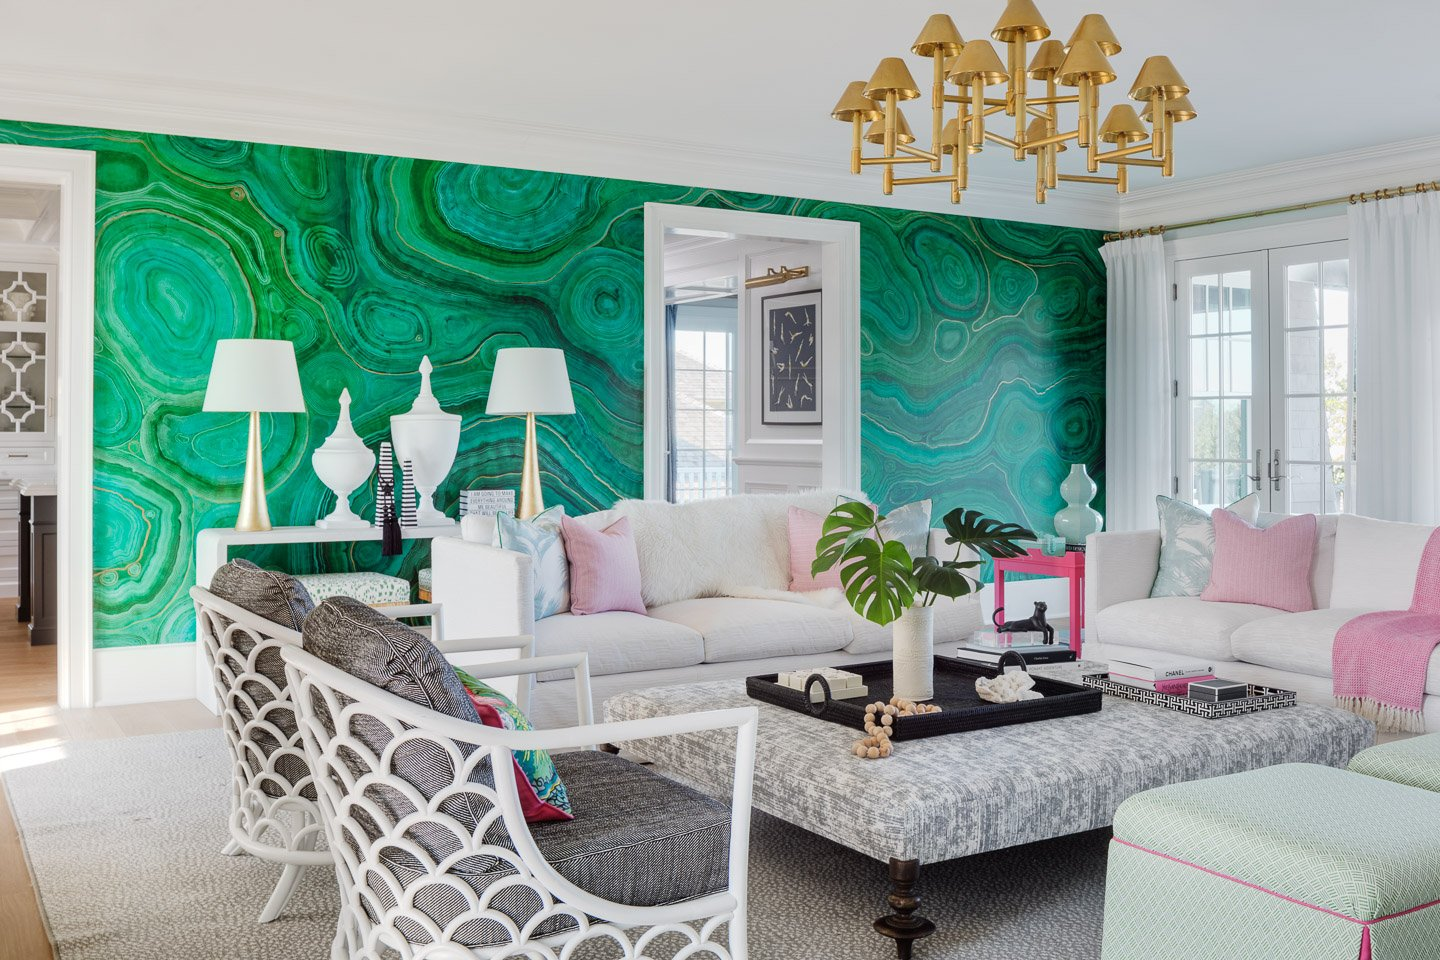 Blakely Interior Design | The Jersey Palm Project | Living Room